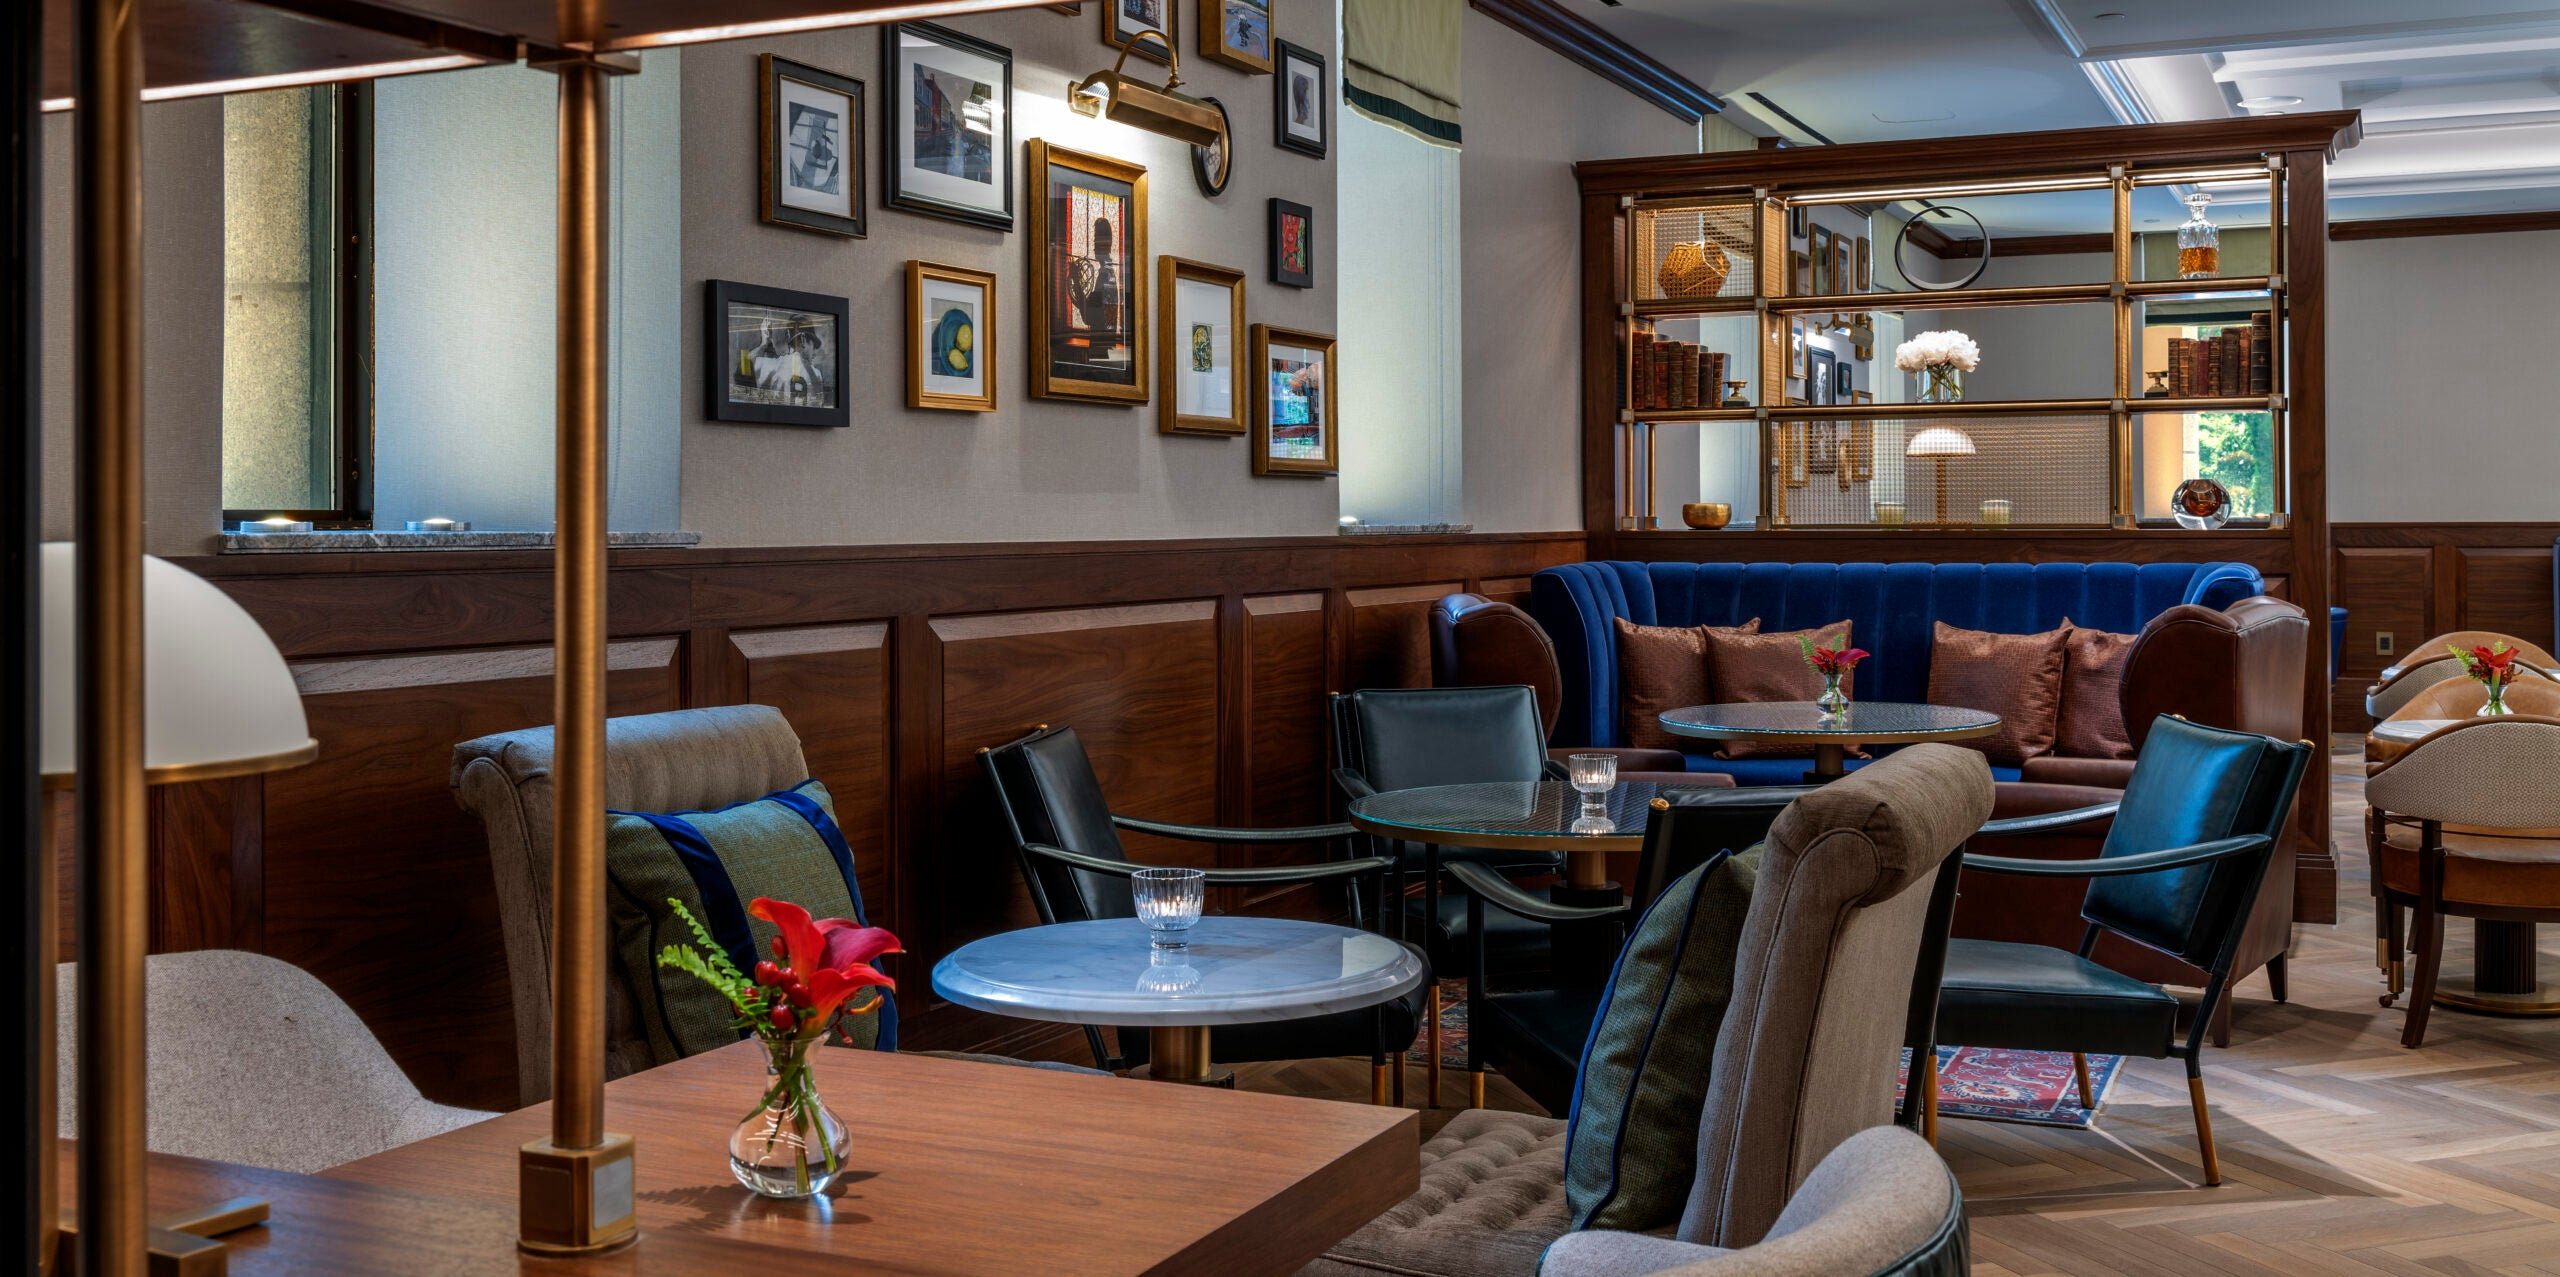 Take a peek inside The Langham, which has reopened after a massive makeover 4